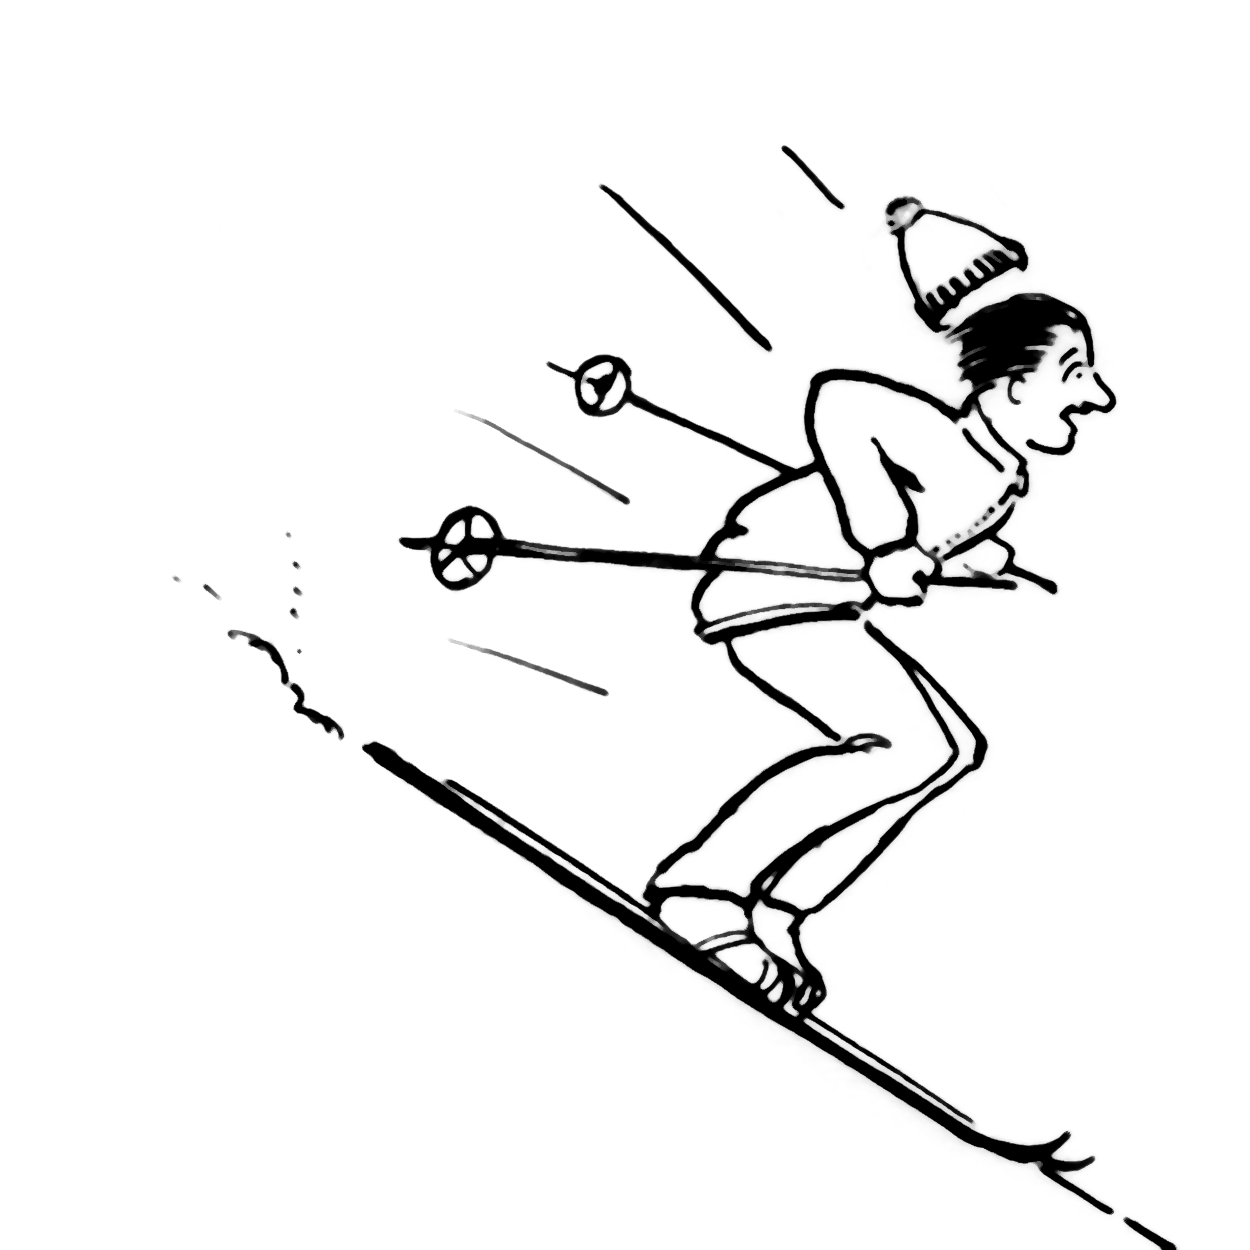 Line drawing of a man skiing